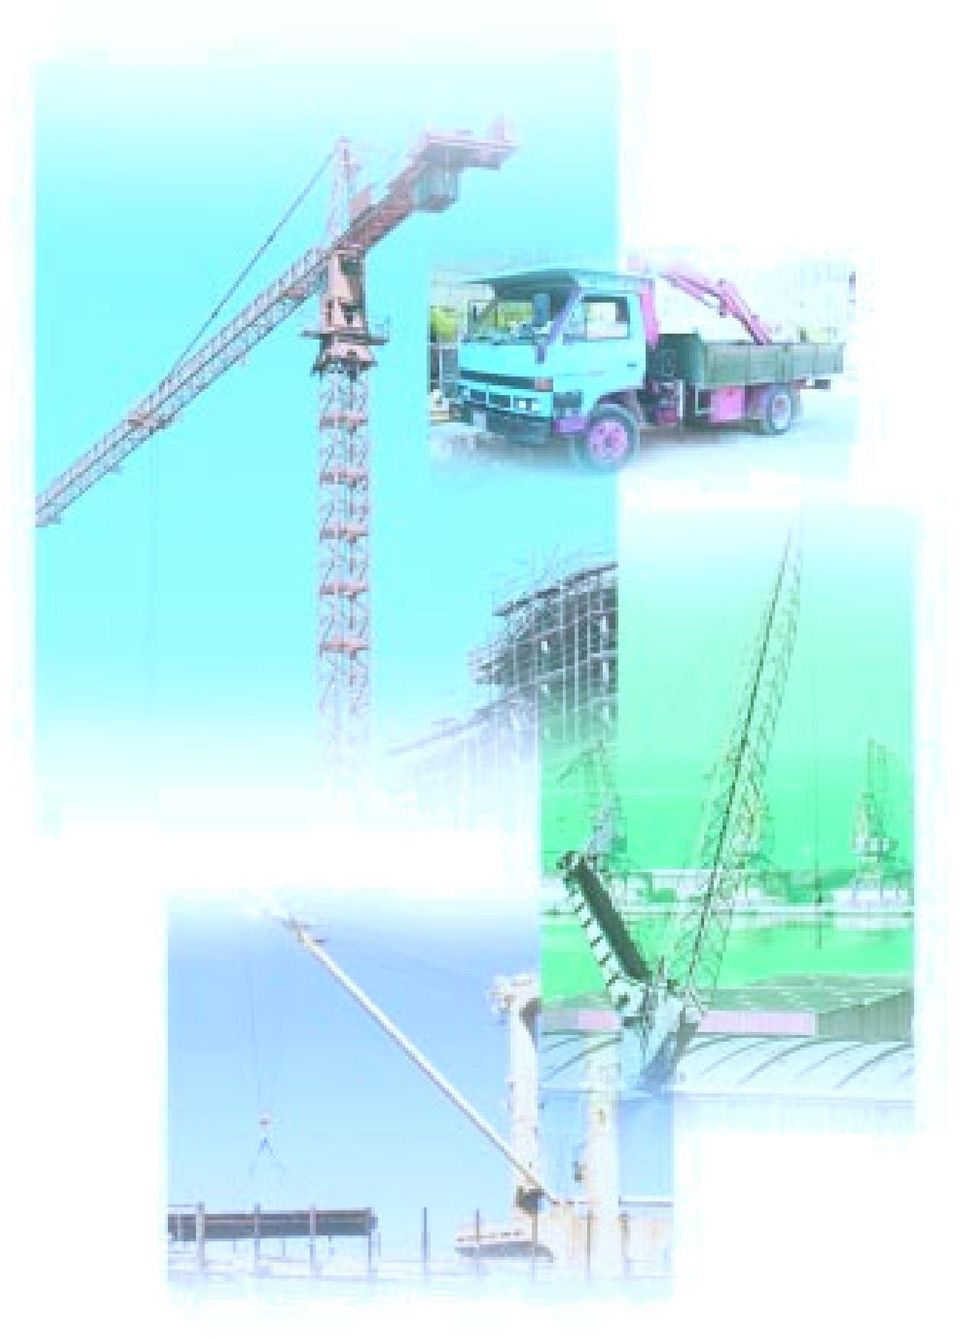 Contents. 1. Foreword Common accidents in lifting operations ...